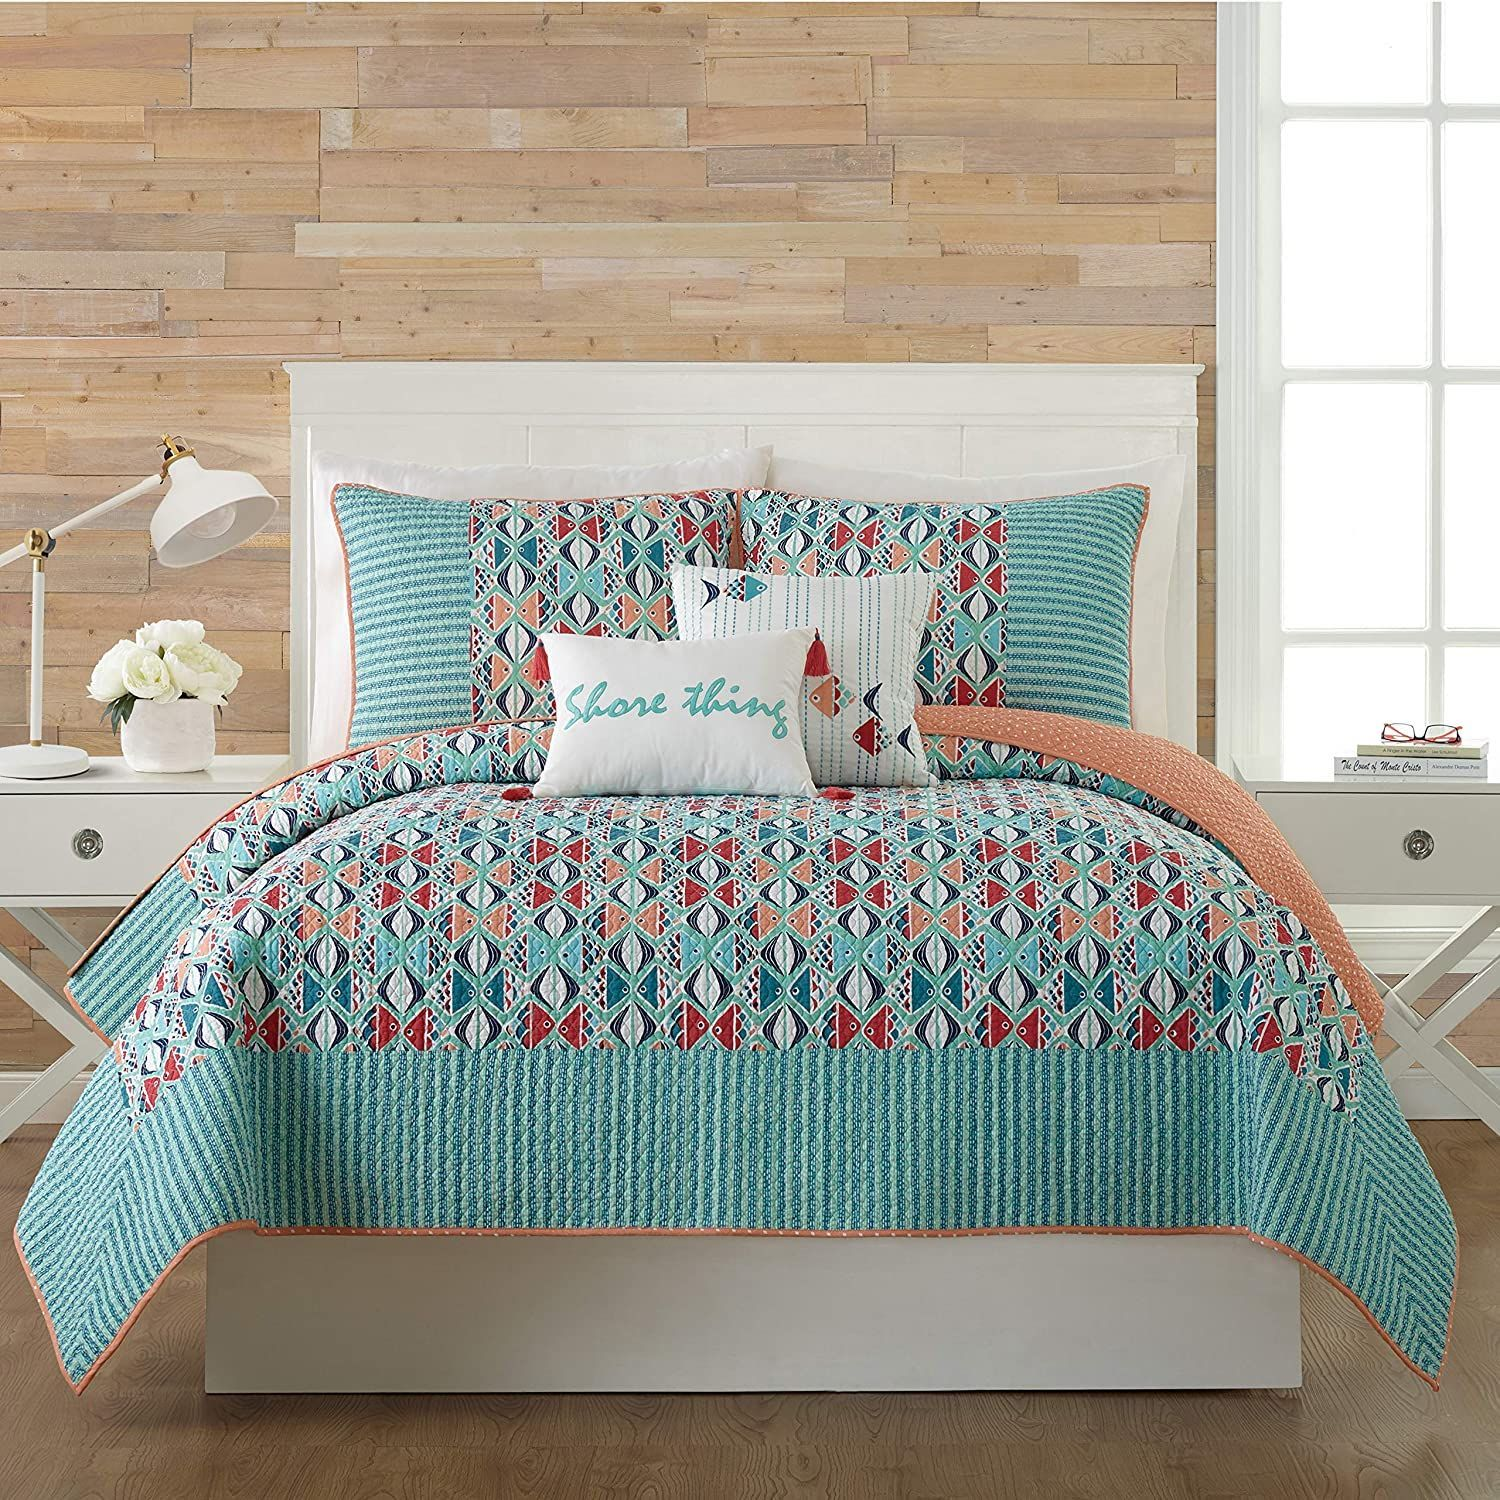 Beach Quilts Nautical Quilts Coastal Quilts Beachfront Decor In 2020 Beach Themed Bedroom Coastal Quilts Vera Bradley